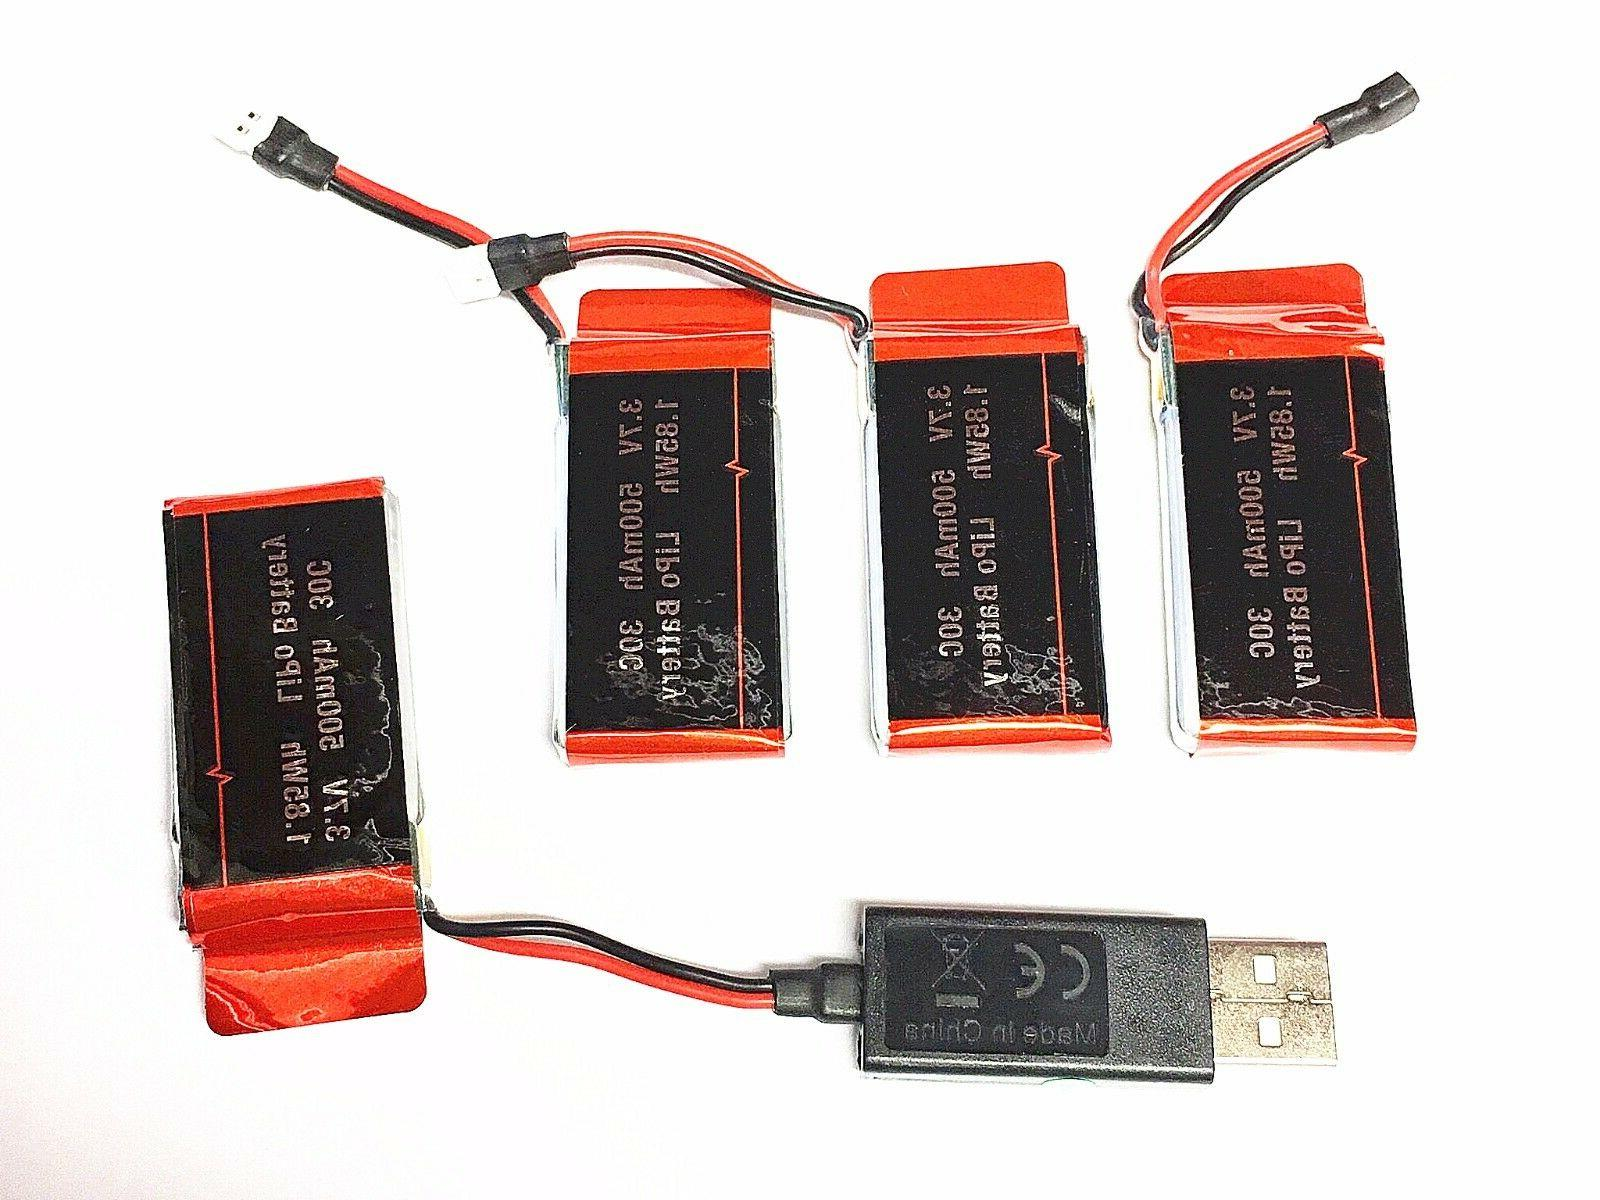 6 Batteries RC Headless 720P Charger